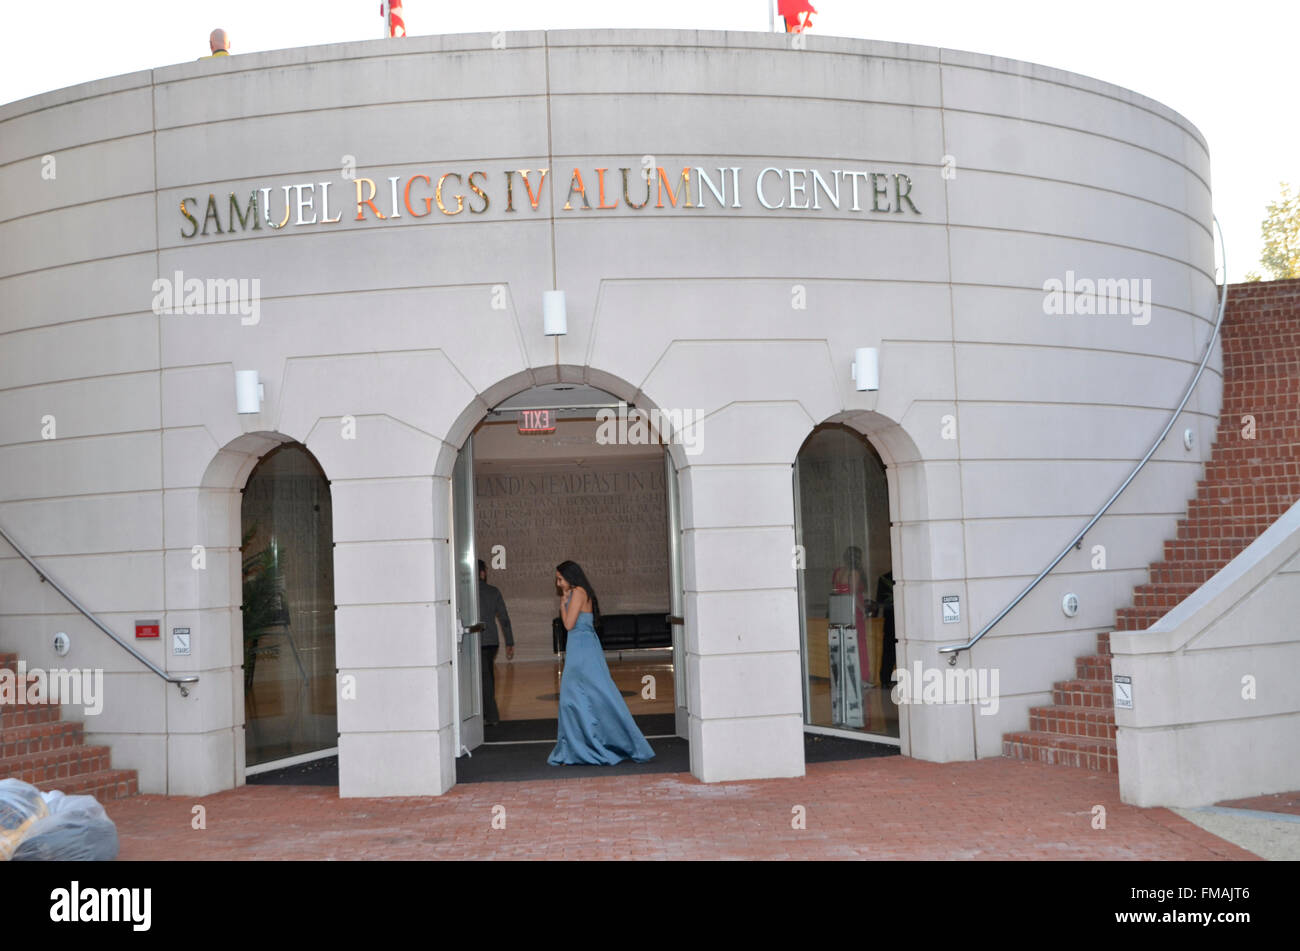 The Samuel Riggs Alumni Center at the University of Maryland in College Park, Maryland - Stock Image